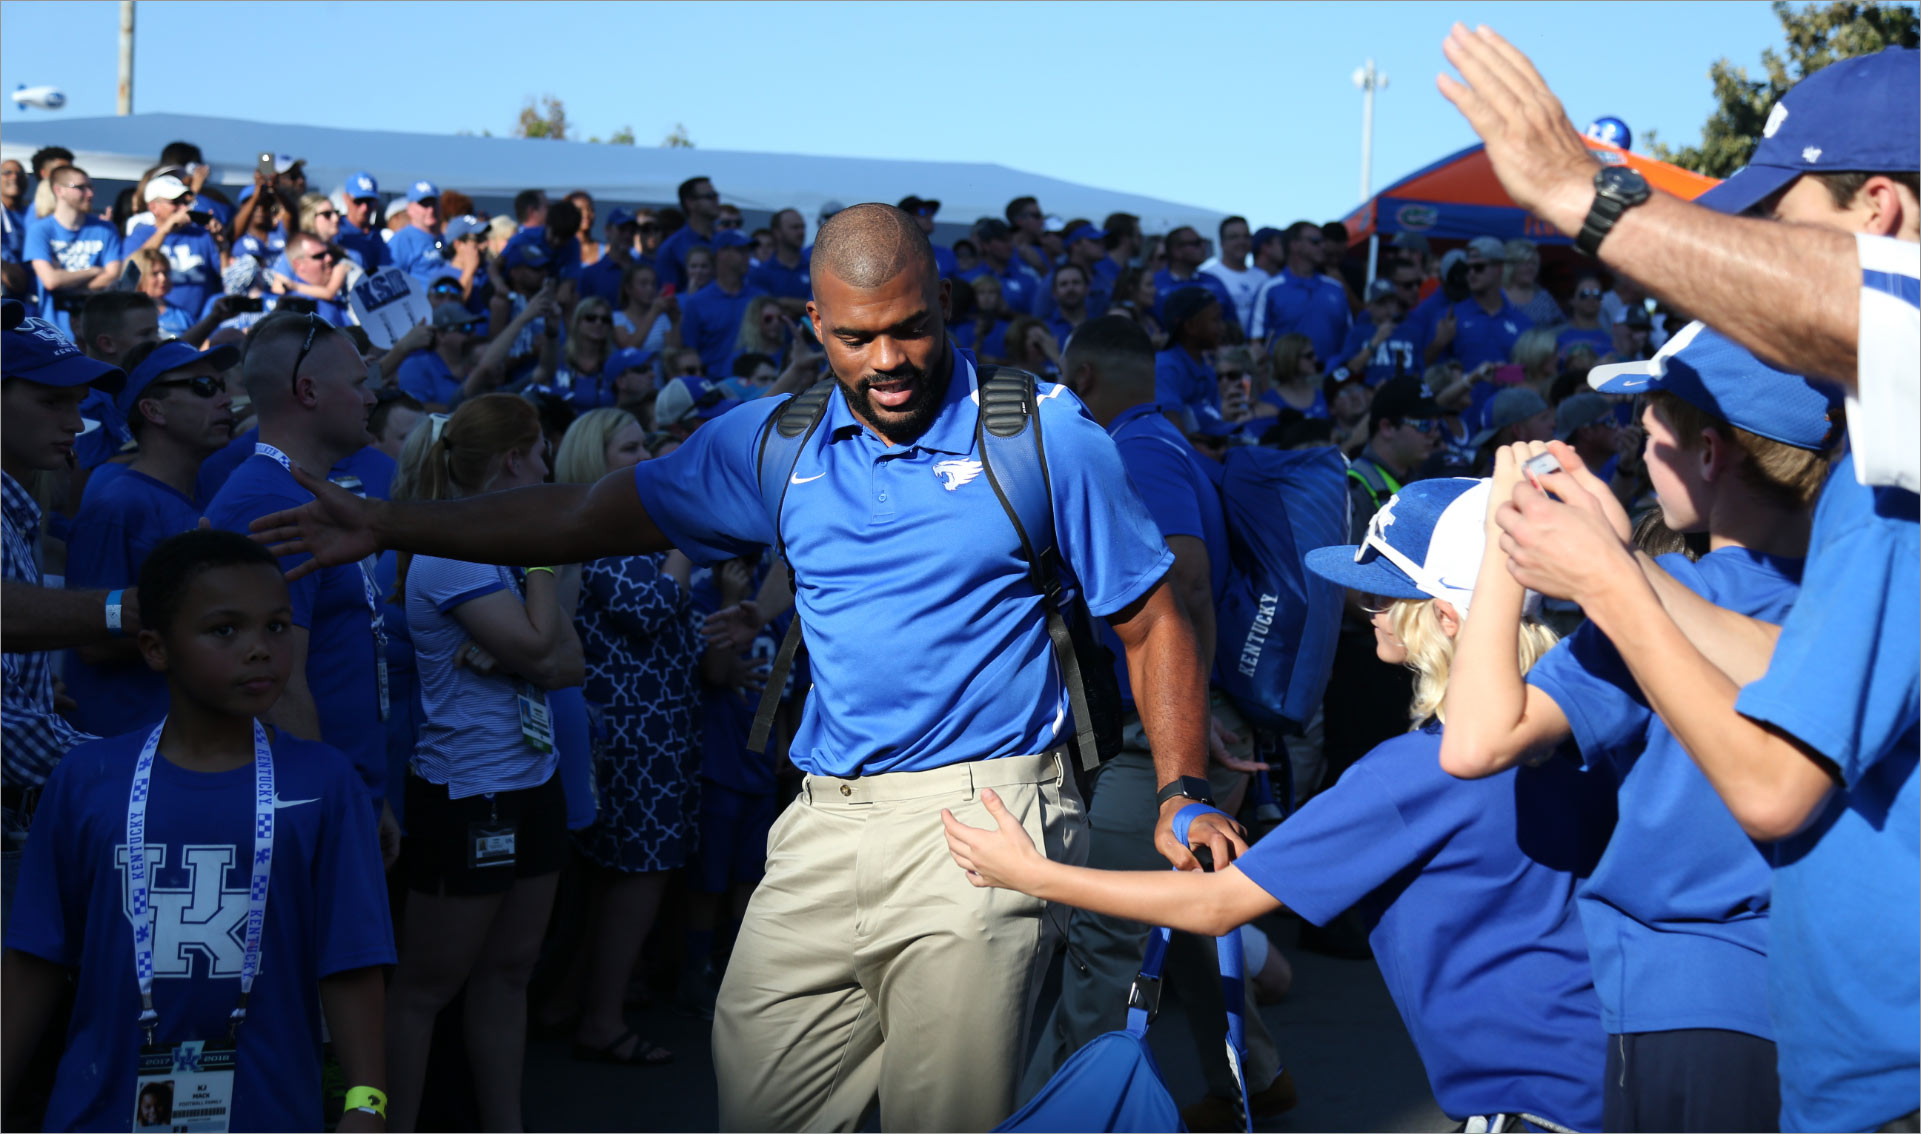 Courtney walks through a crowd of fans, all wearing blue, before a football game. He holds his arm out to give a kid a high five.